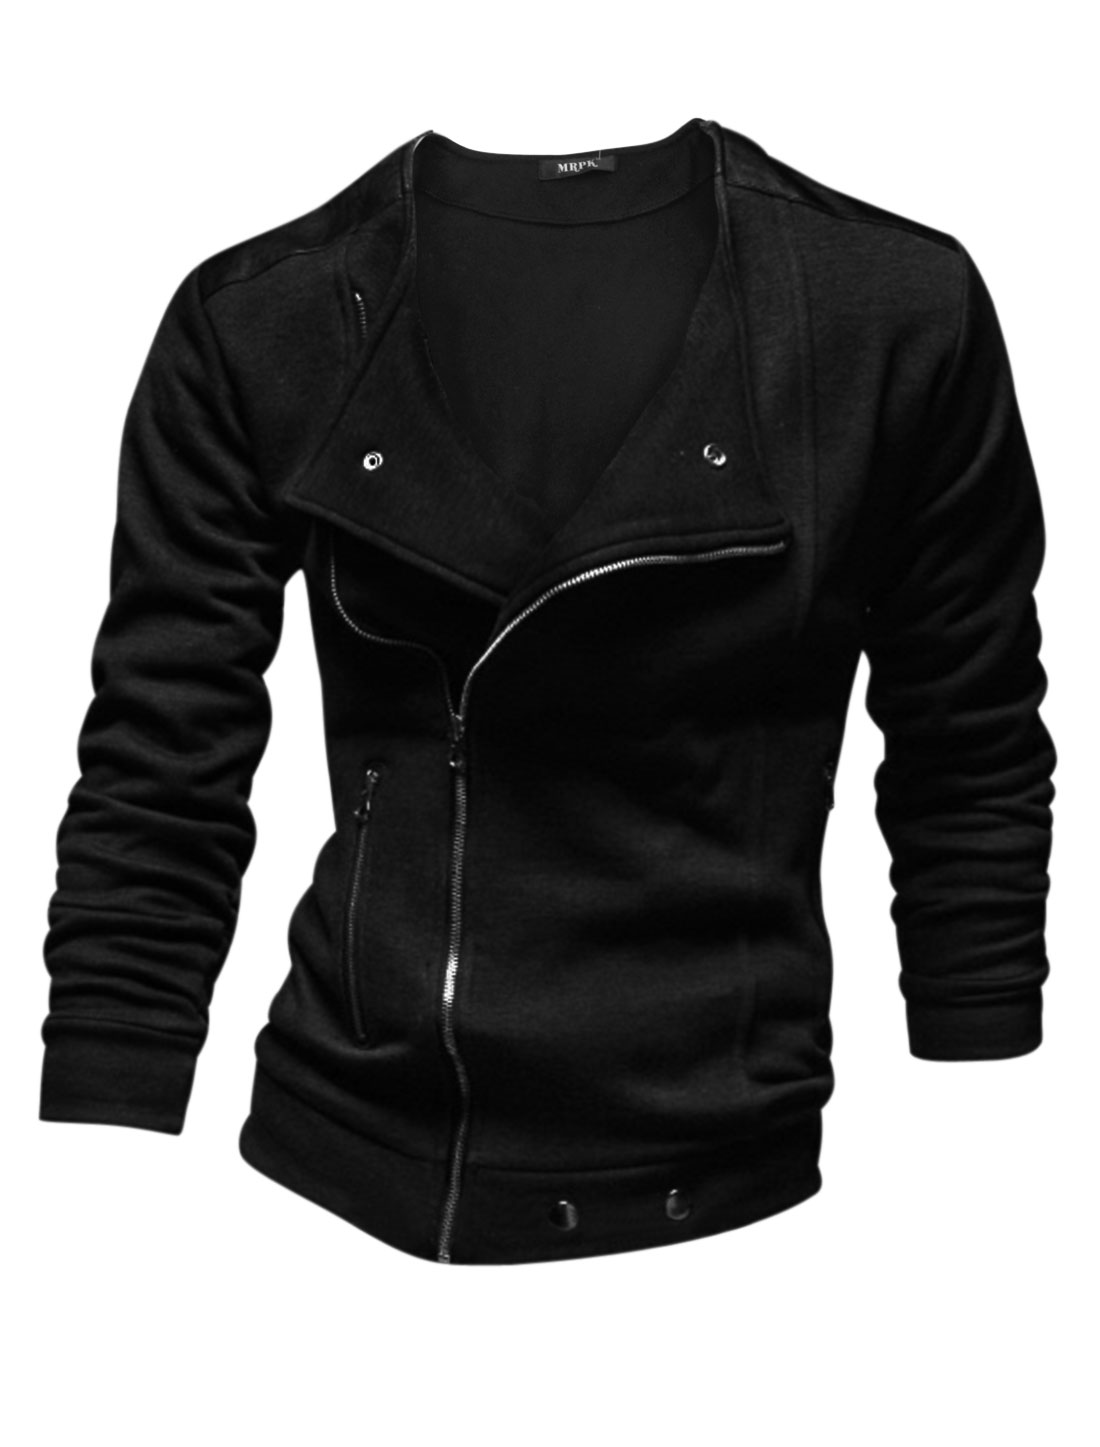 Men Convertible Collar Inclined Zipper Long Sleeve Chic Jacket Black M